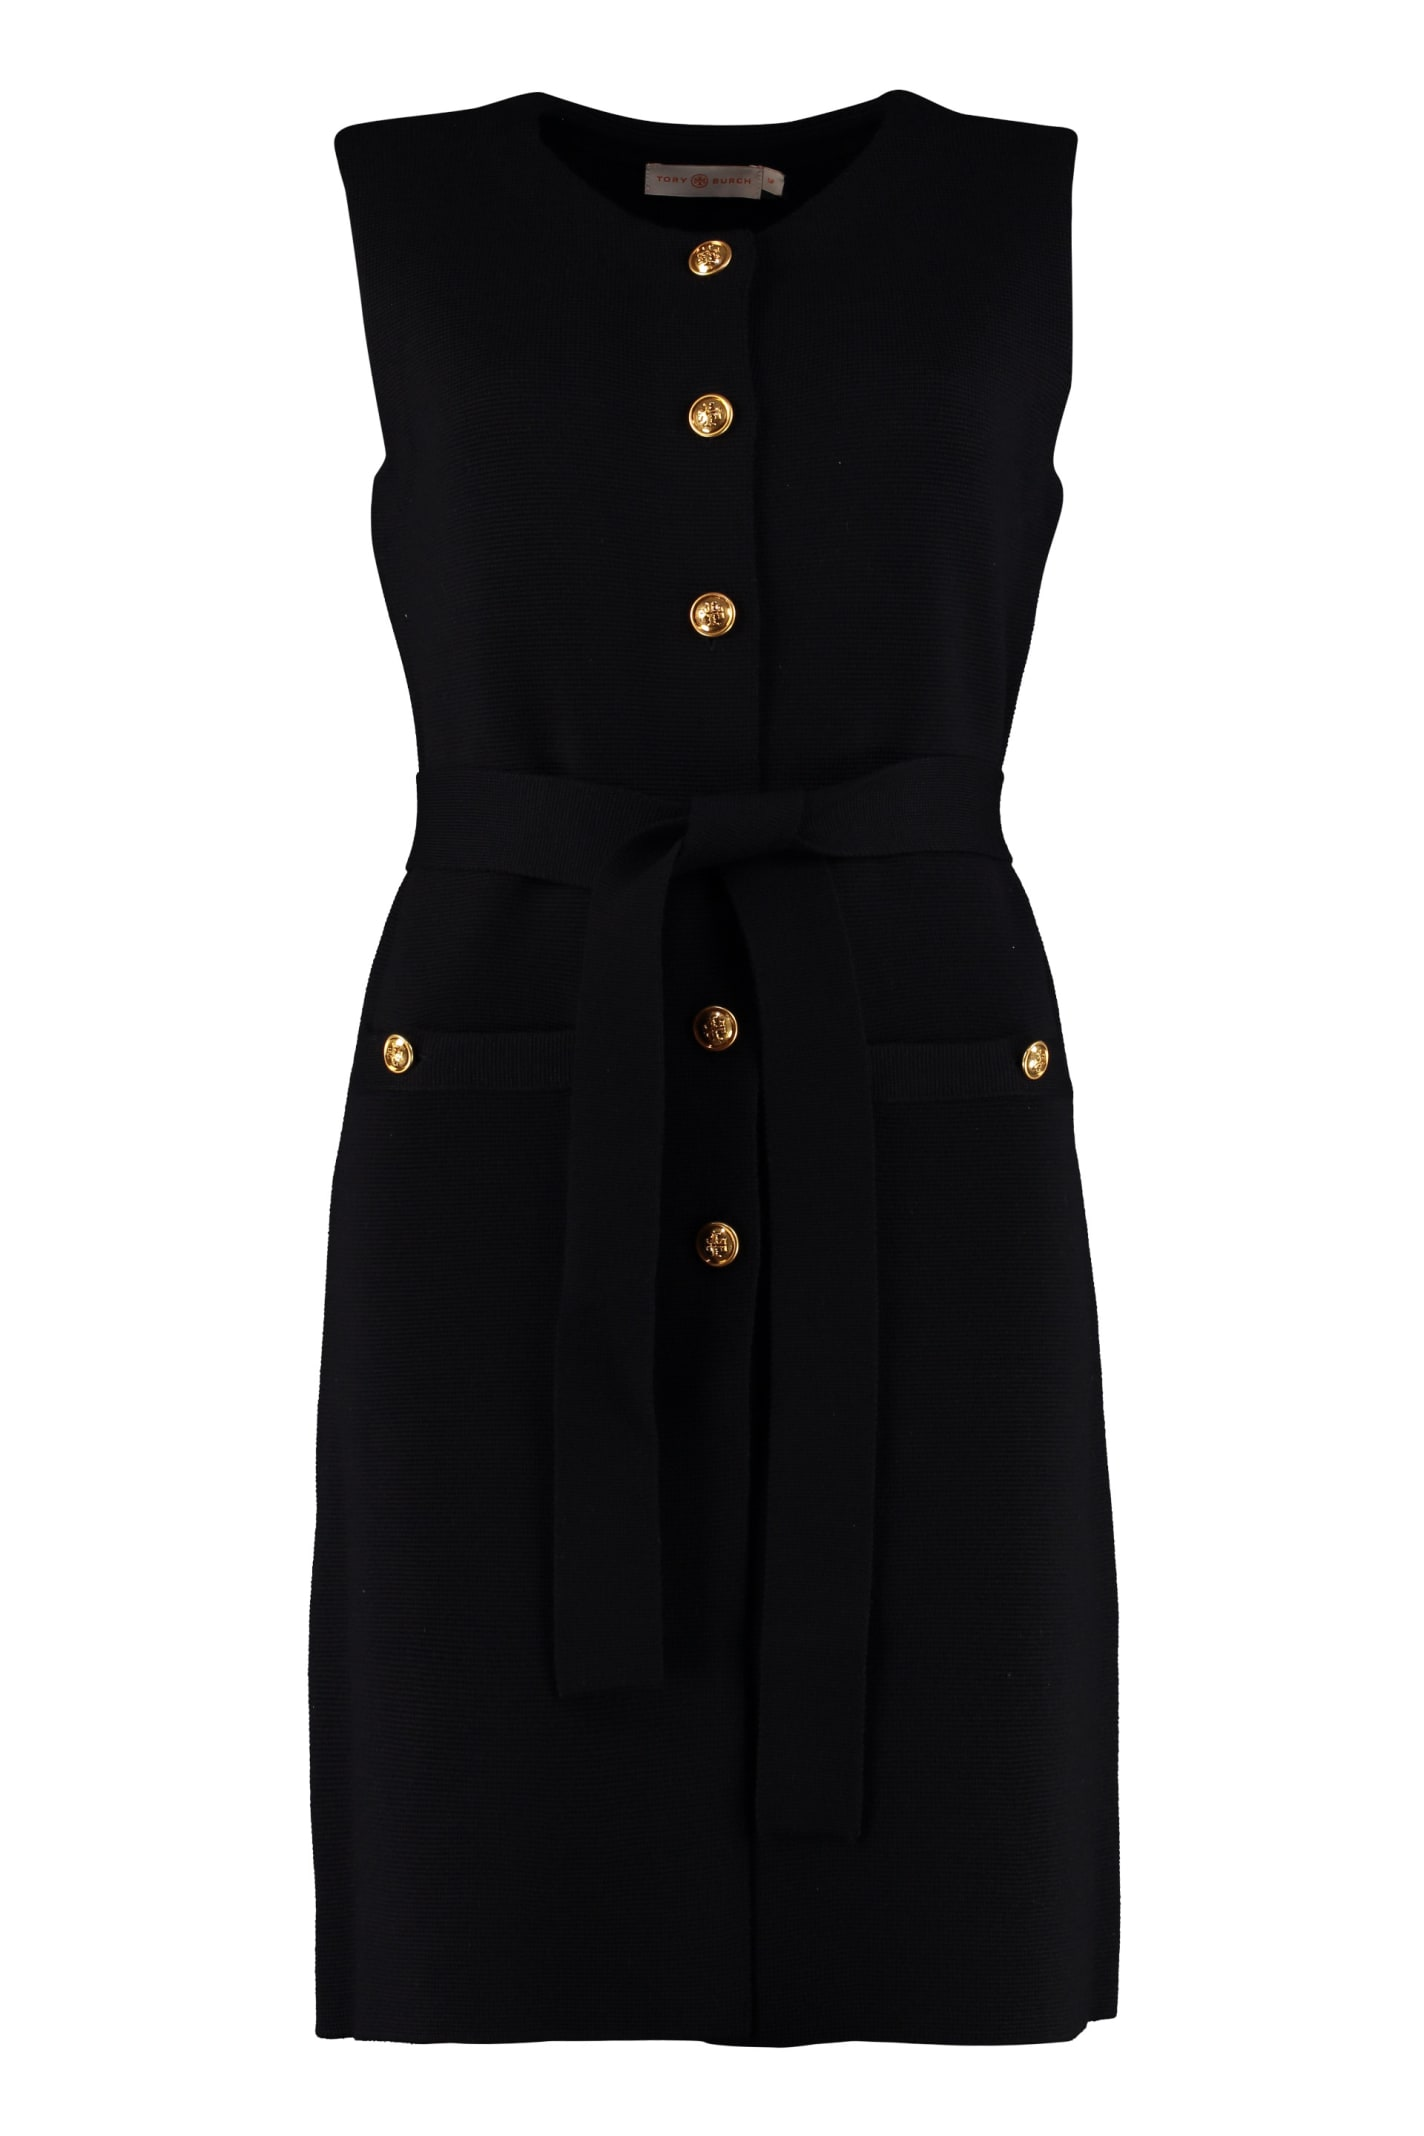 Tory Burch Belted Knit Dress